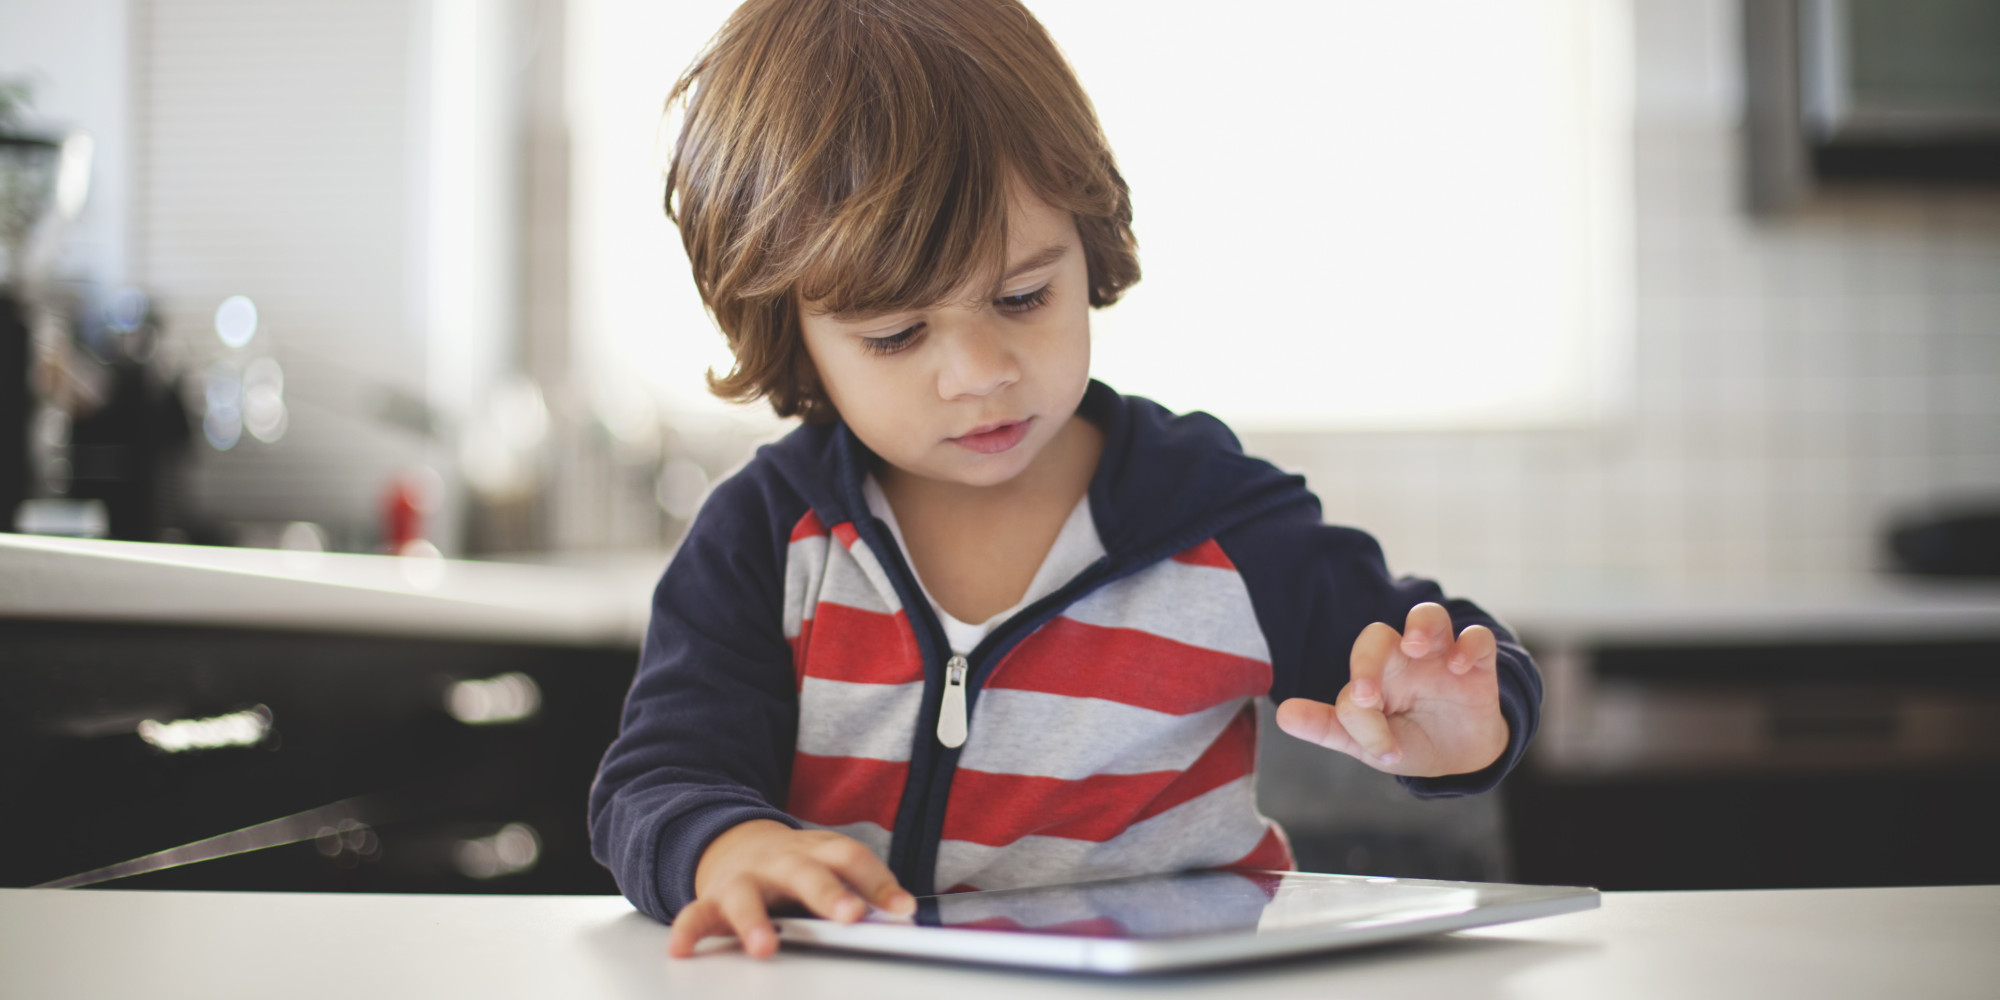 Kids' Screen Time May Affect Their Well-Being (STUDY ...